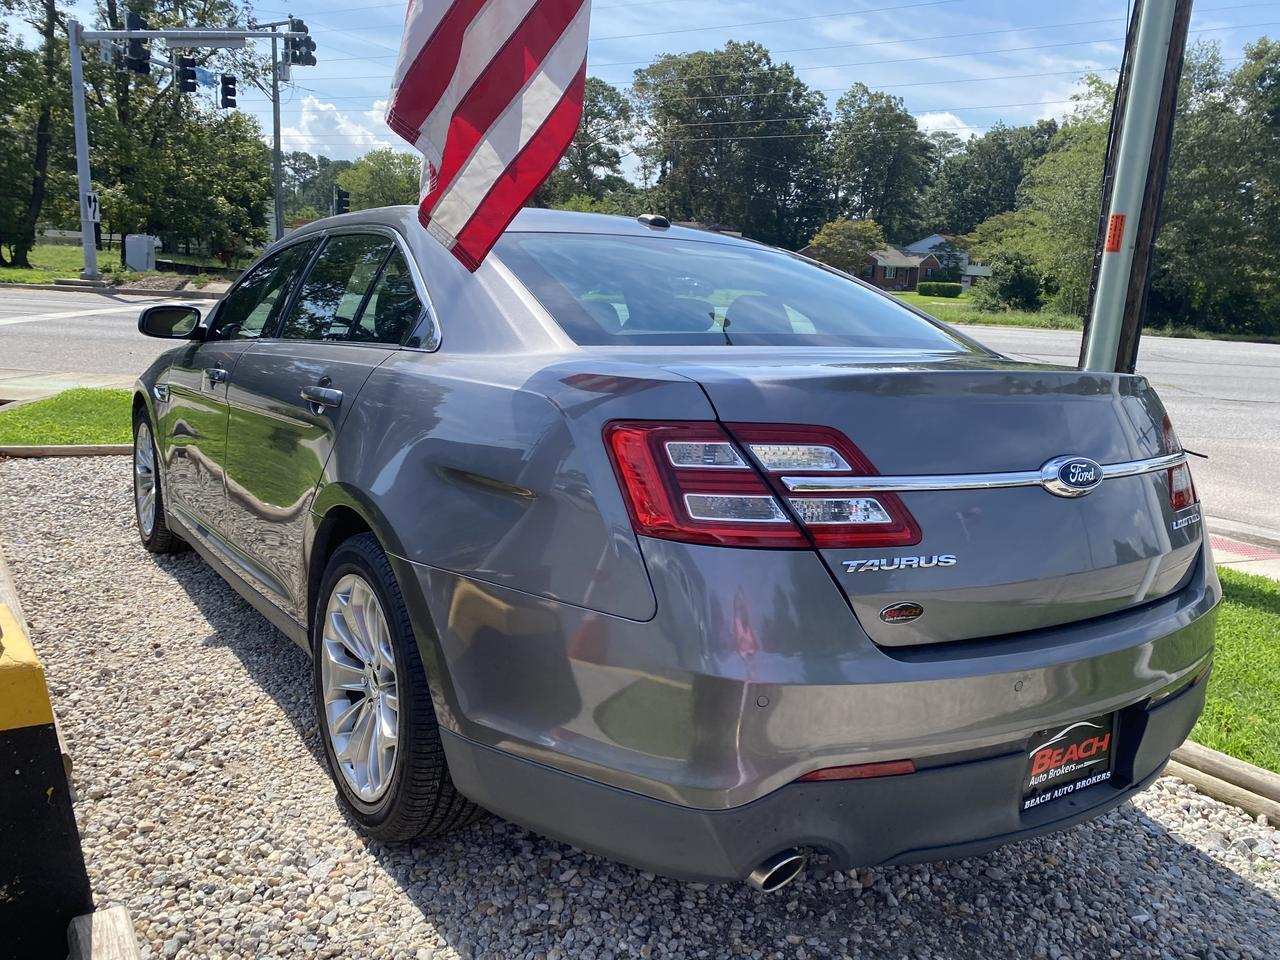 2013 FORD TAURUS LIMITED, WARRANTY, HEATED/COOLED SEATS, BACKUP CAM, PARKING SENSORS, SUNROOF, CLEAN CARFAX! Norfolk VA